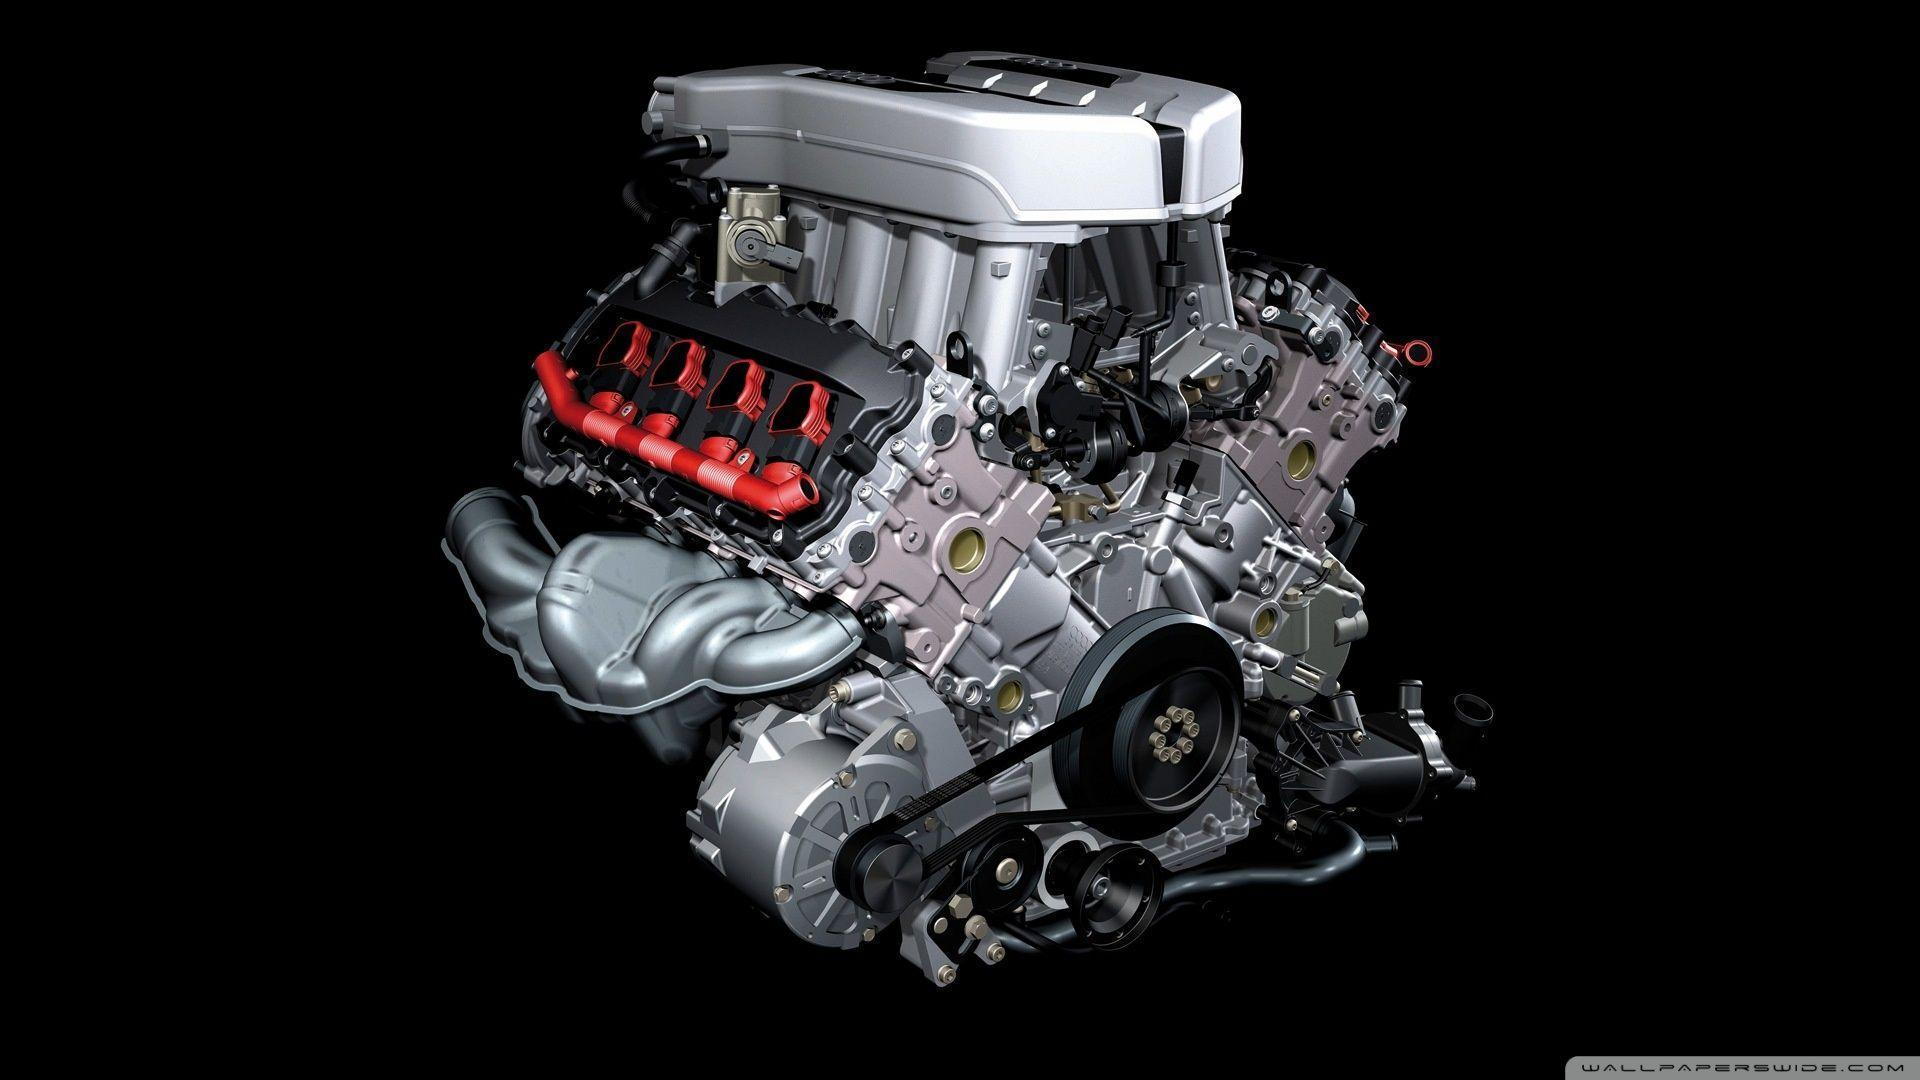 Best Wallpaper Gallery With Pc Wallpaper Volkswagen: Engines Wallpapers